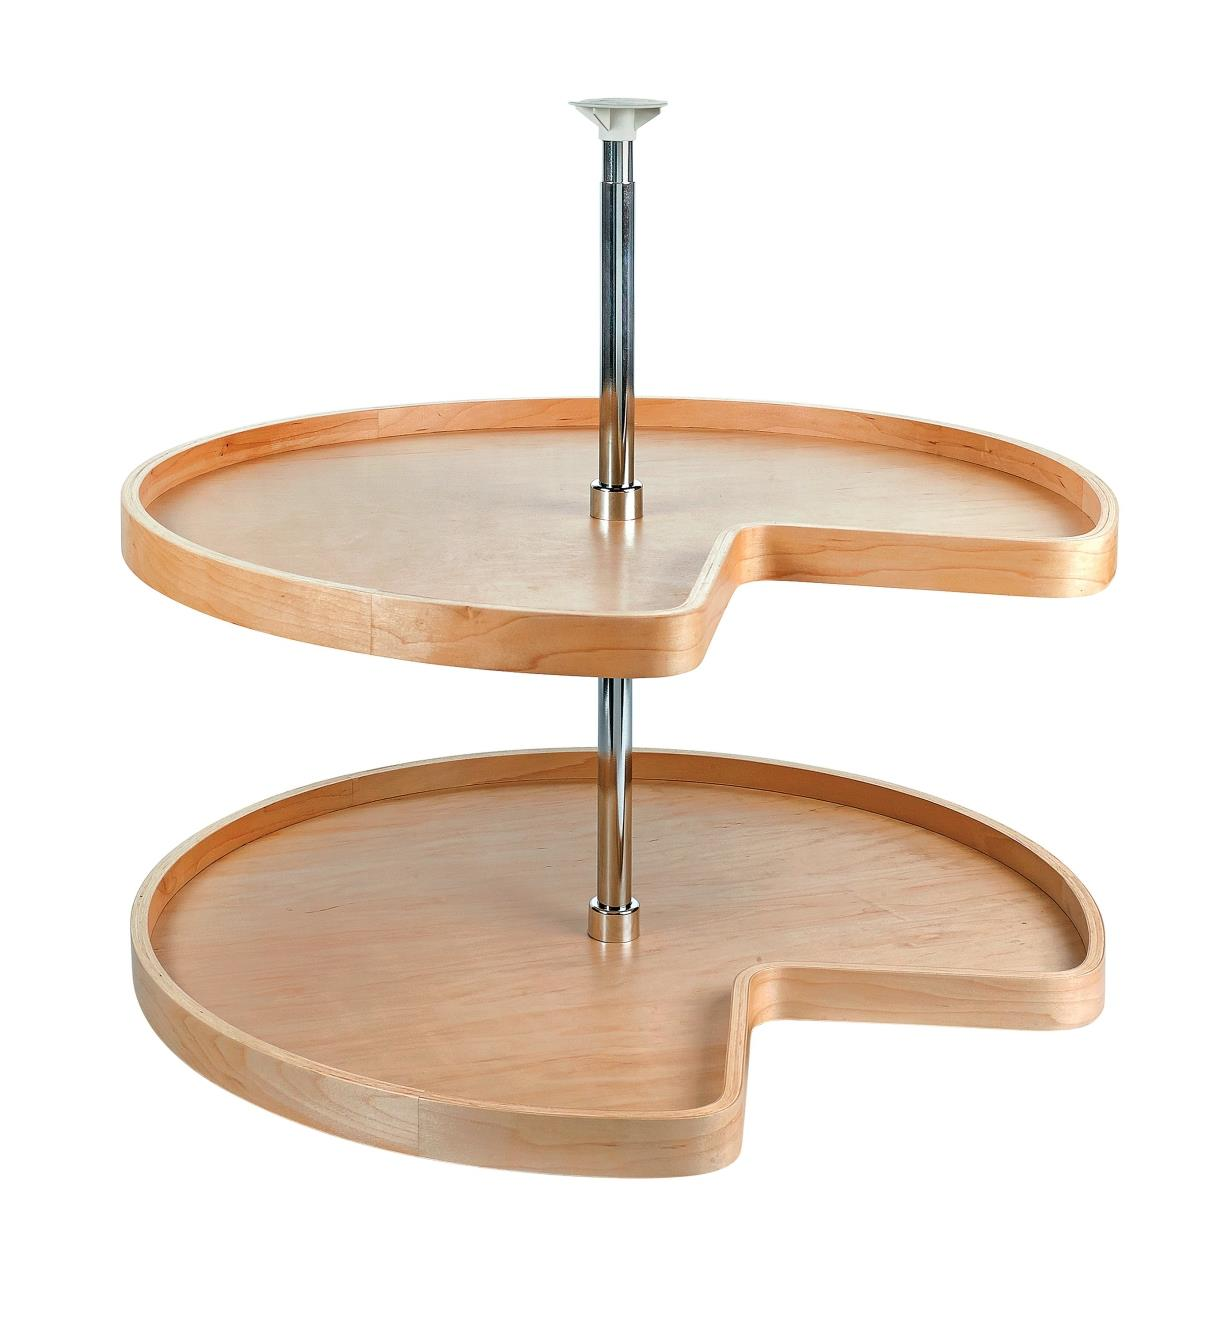 "12K7410 - 28"" Kidney Shelf Set"